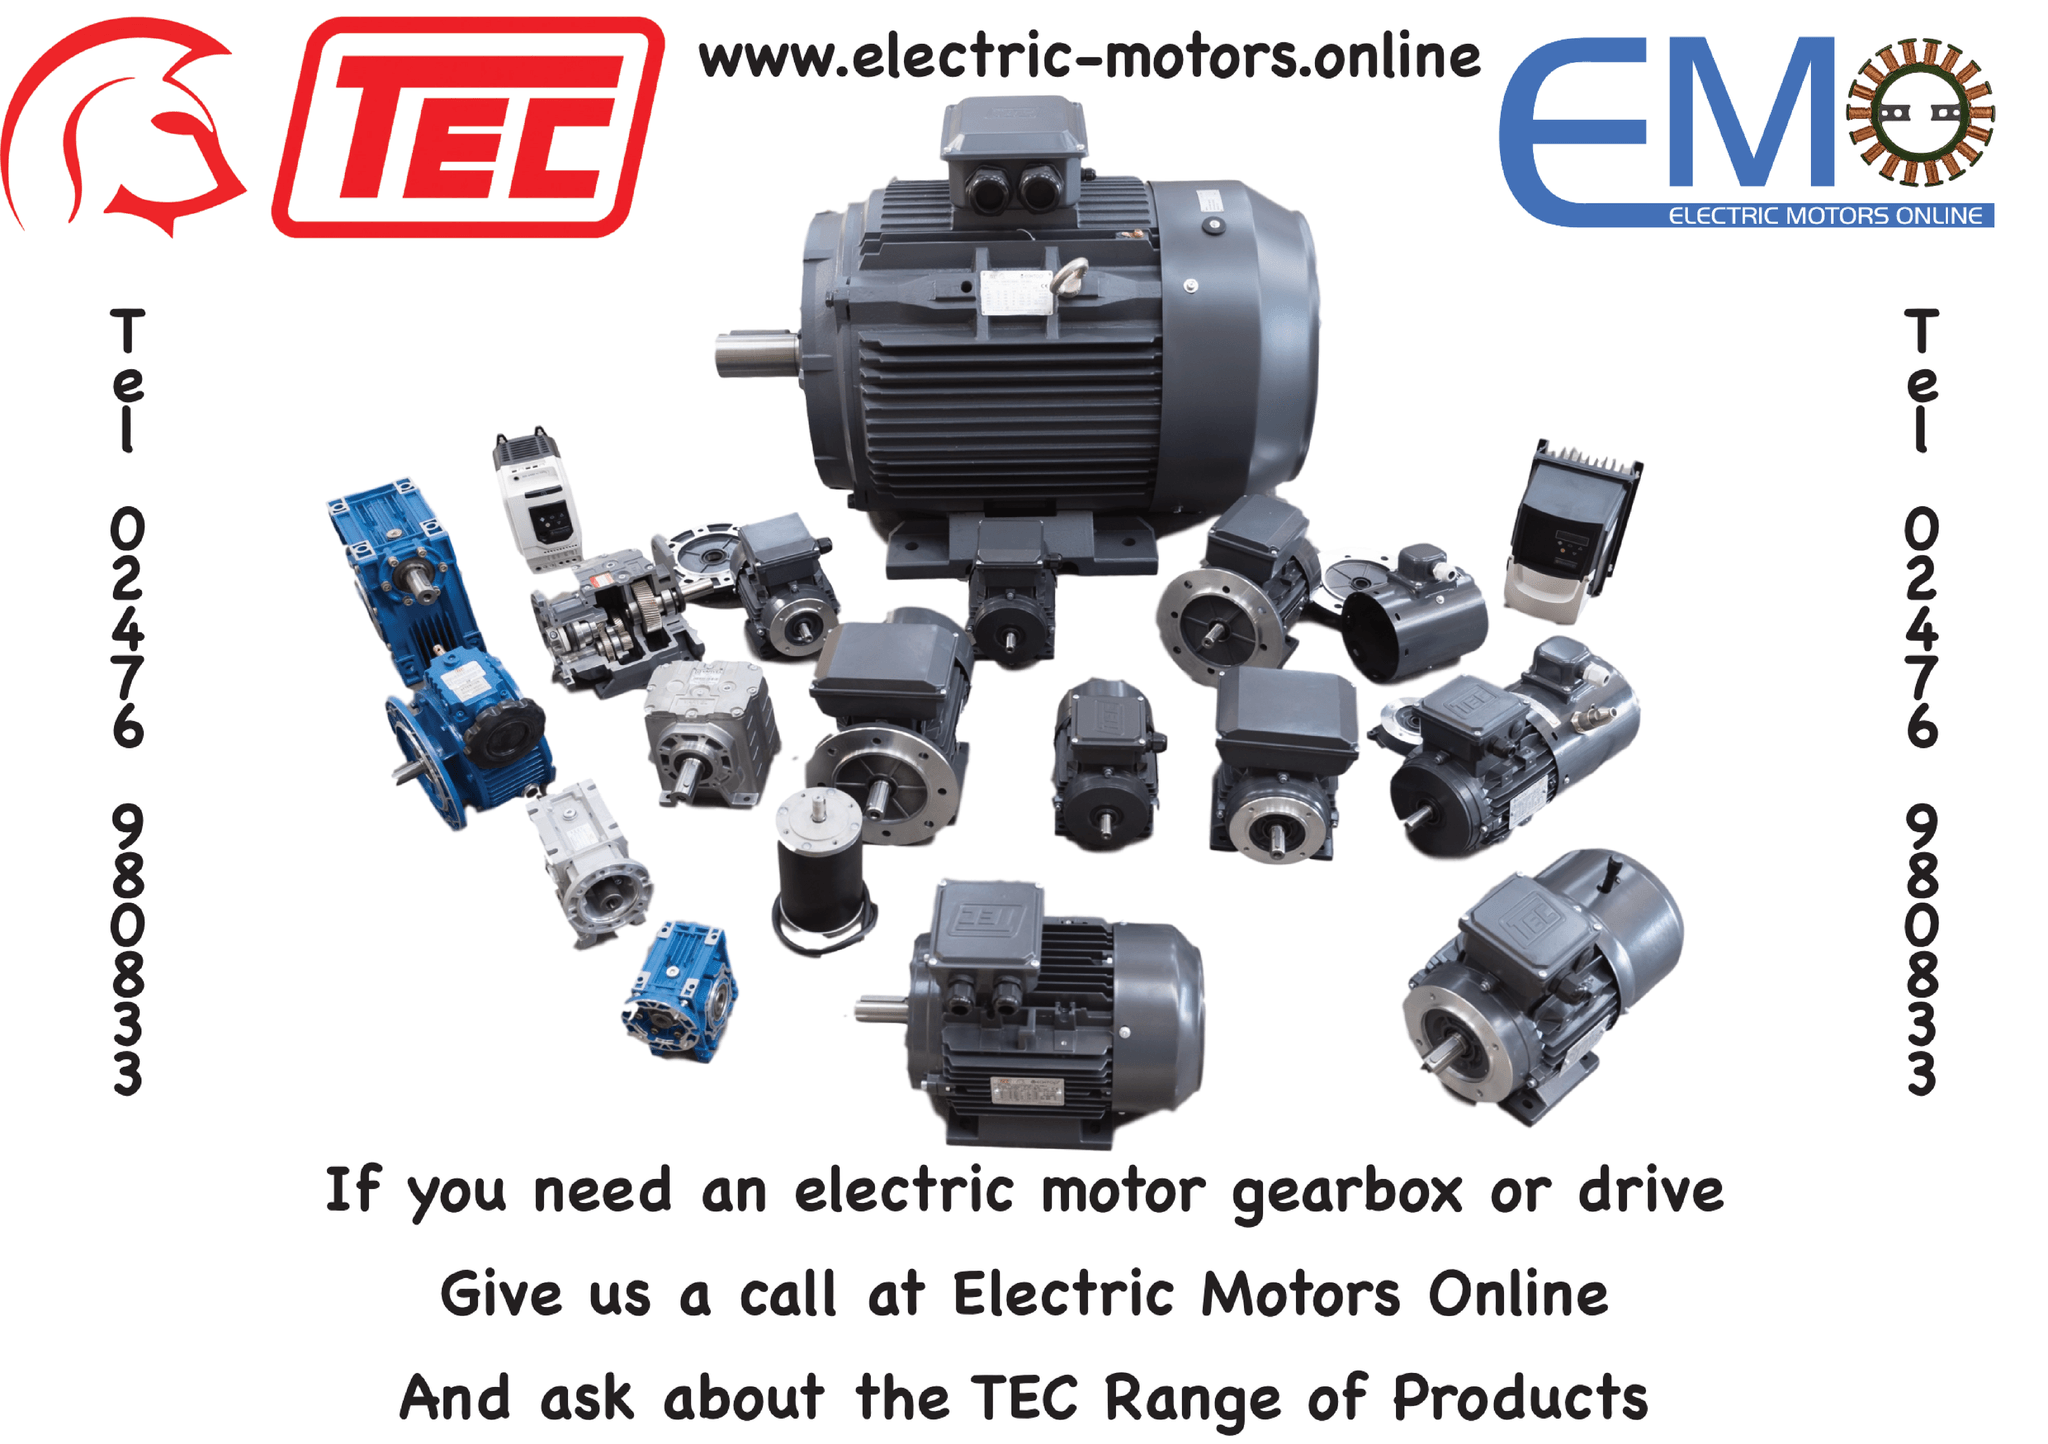 TEC Motors, Gearboxes and Drives